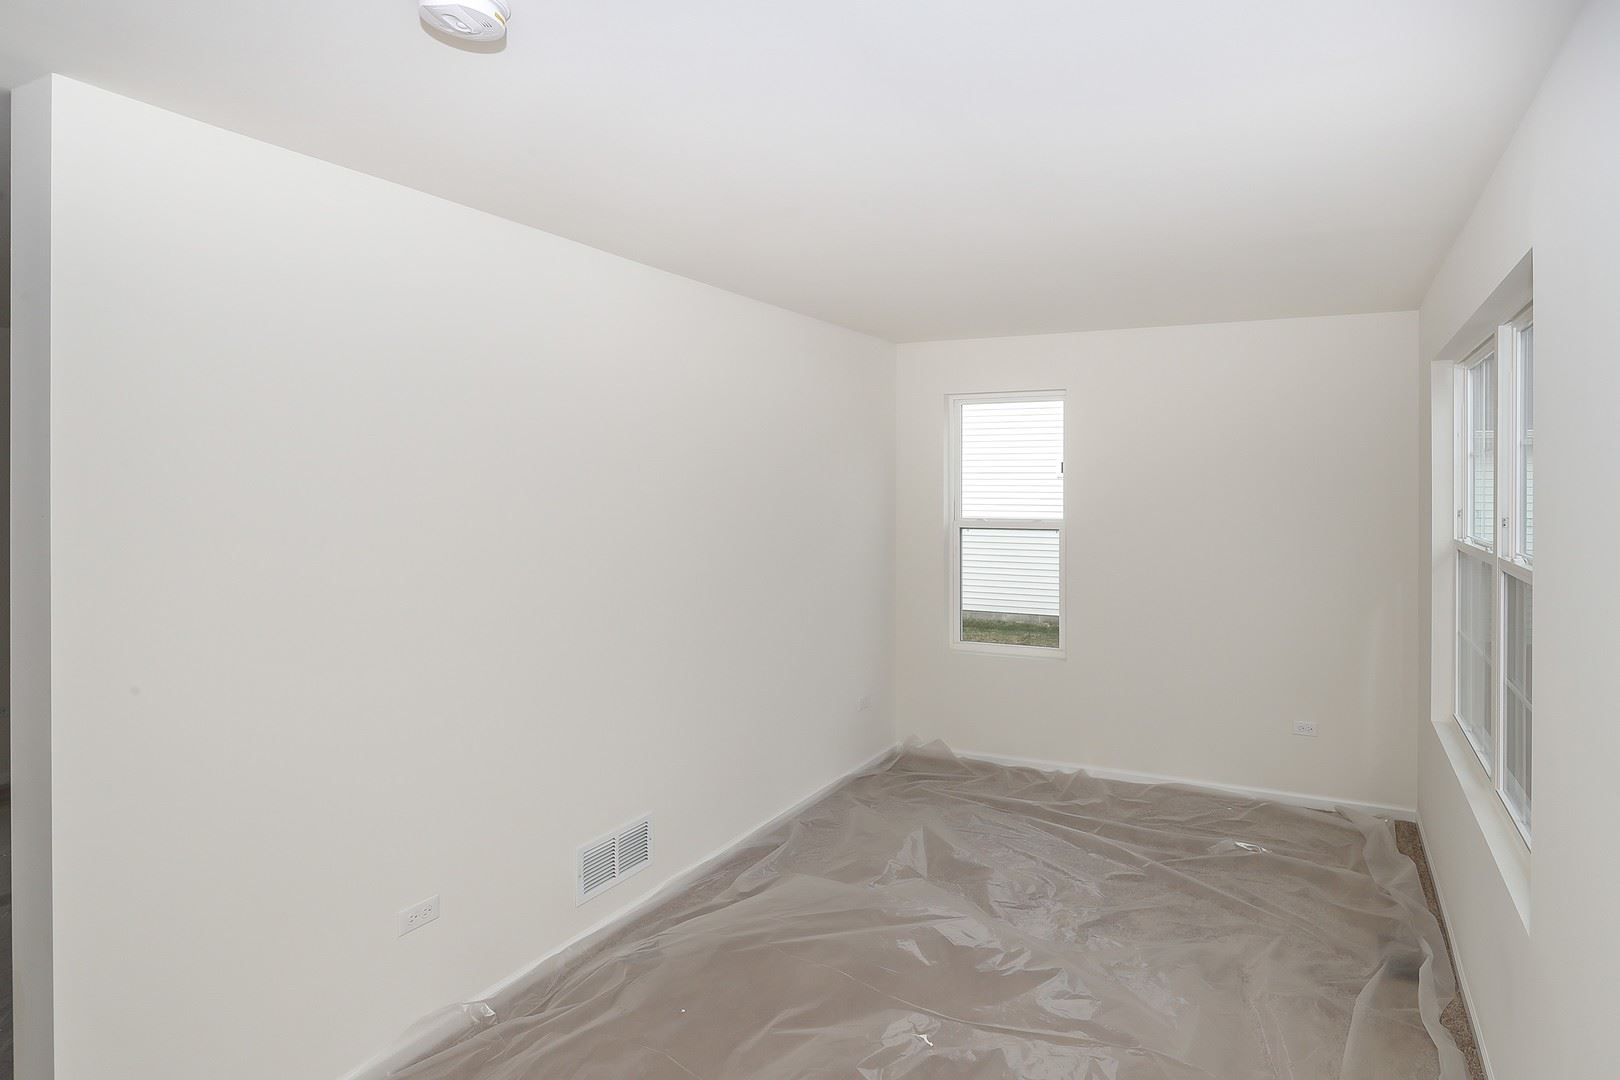 Photo of 6602 Roth Lot #78 Drive, Joliet, IL 60431 (MLS # 11056892)